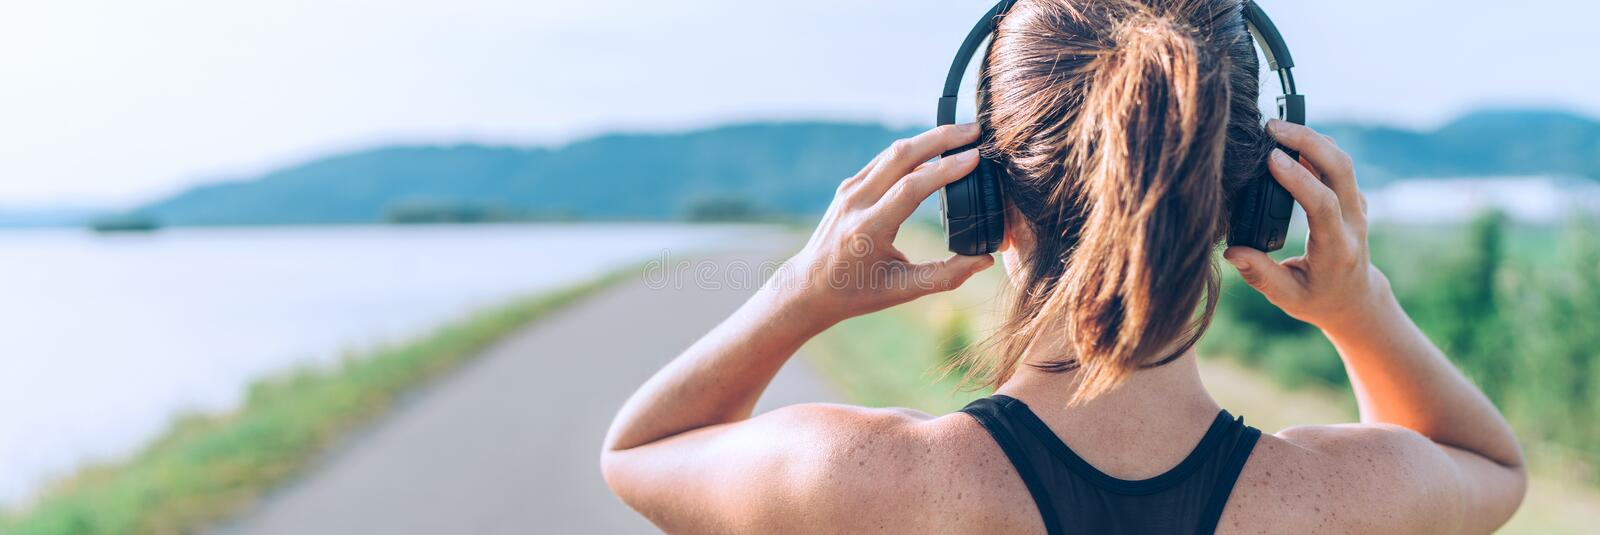 Young teenager girl adjusting  wireless headphones before starting jogging and listening to music. Web page header cropping royalty free stock photo